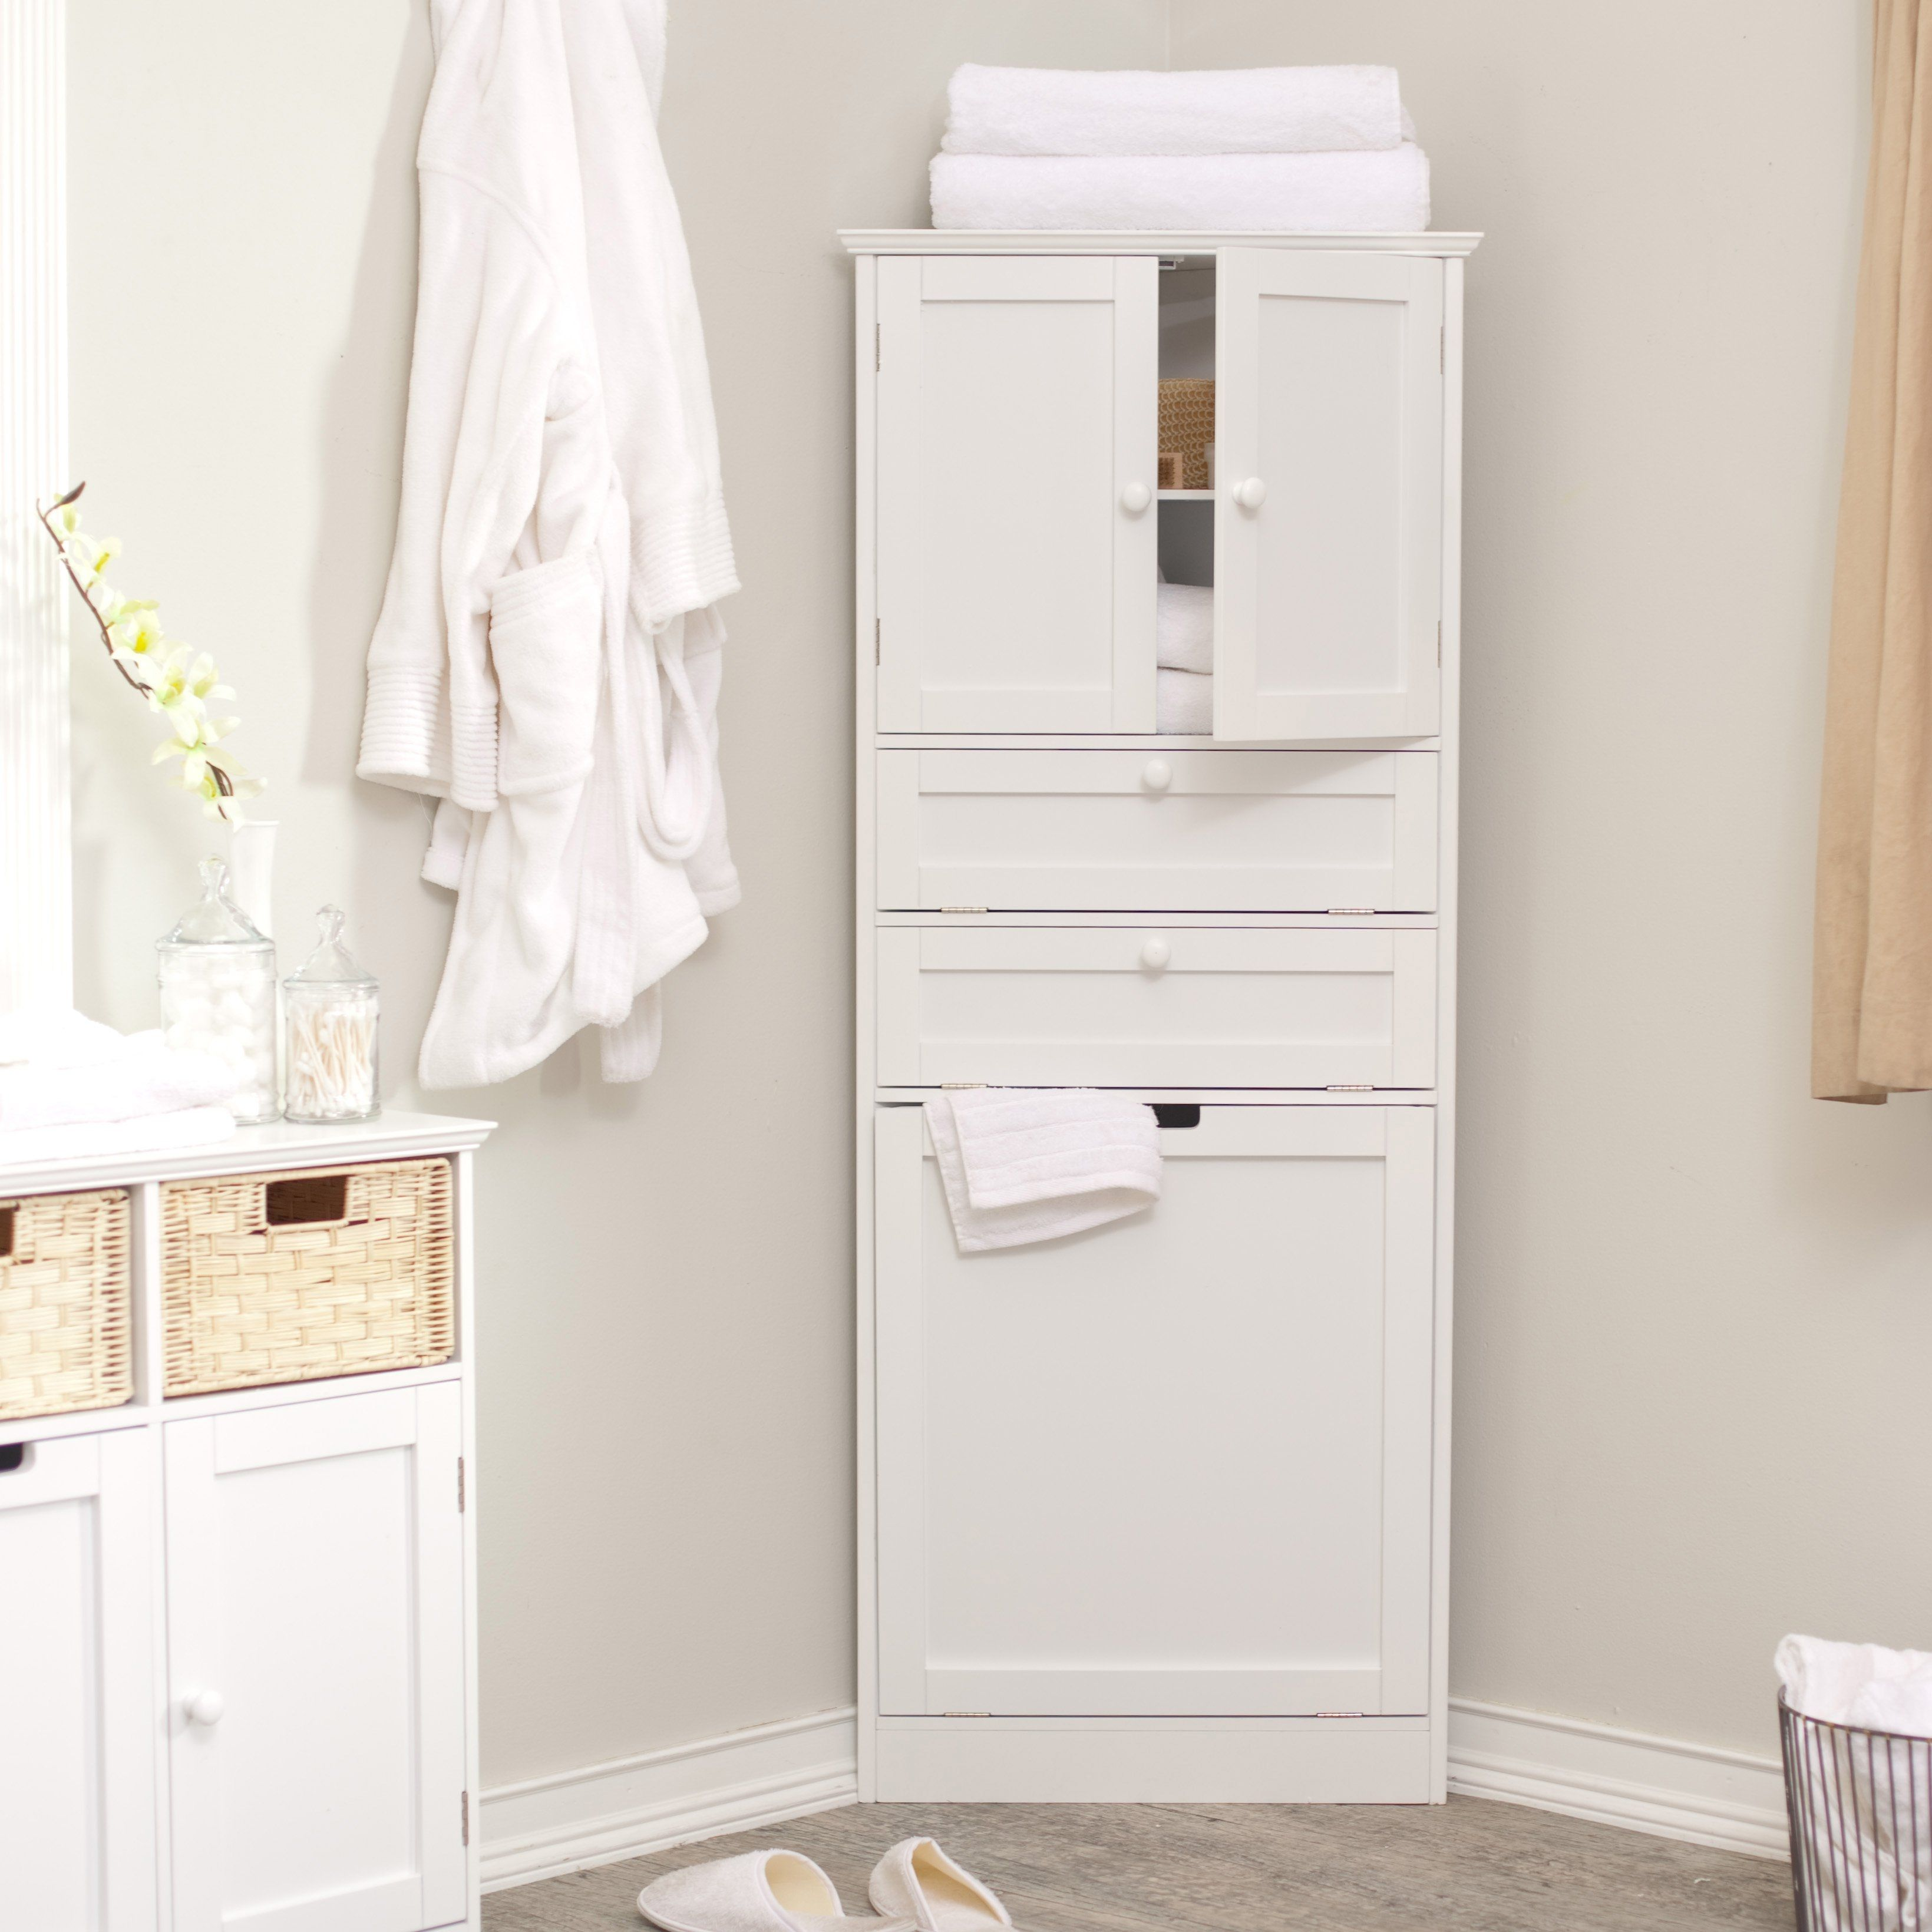 Bathroom Storage Cabinet With Built In Hamper Bathroom Corner Storage Corner Storage Cabinet Bathroom Corner Storage Cabinet